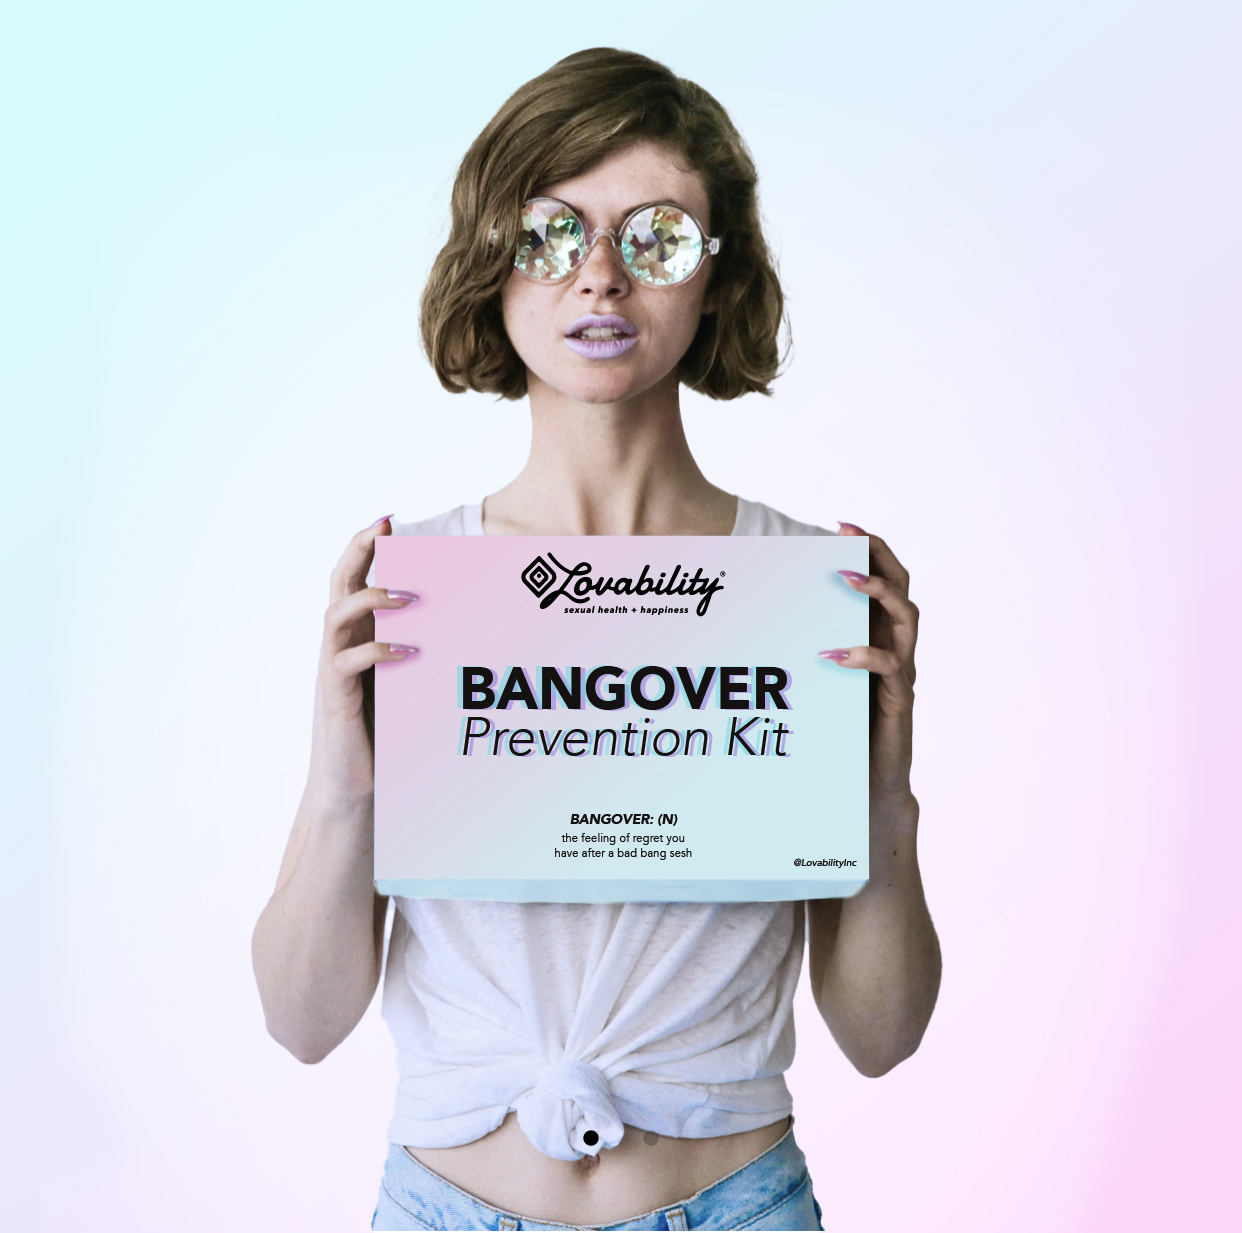 Bangover Prevention Kit by Lovability